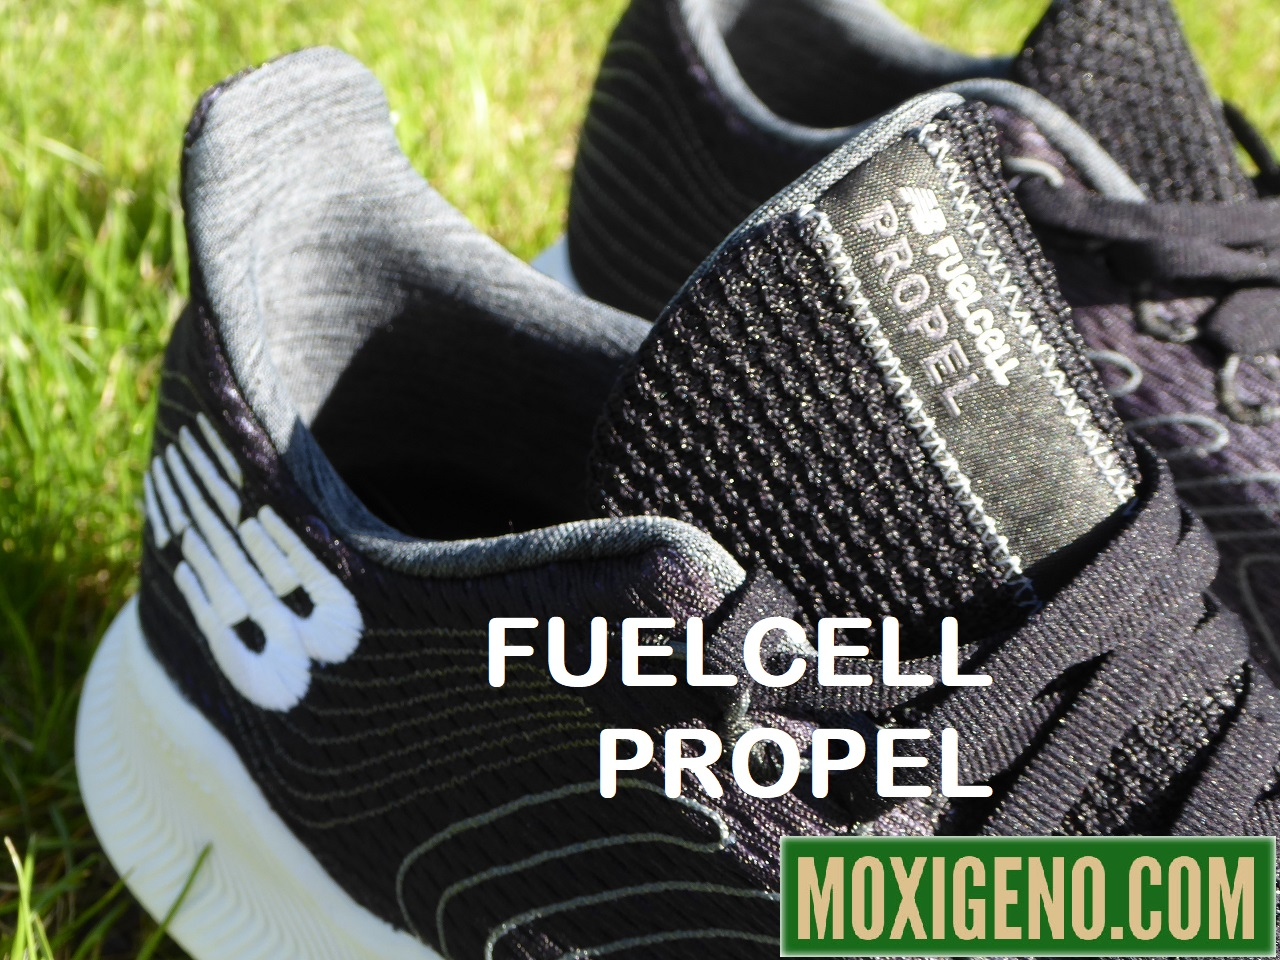 NEW BALANCE FUELCELL PROPEL (262GR/DROP6MM): ZAPATILLAS RUNNING LIGERAS Y DURADERAS